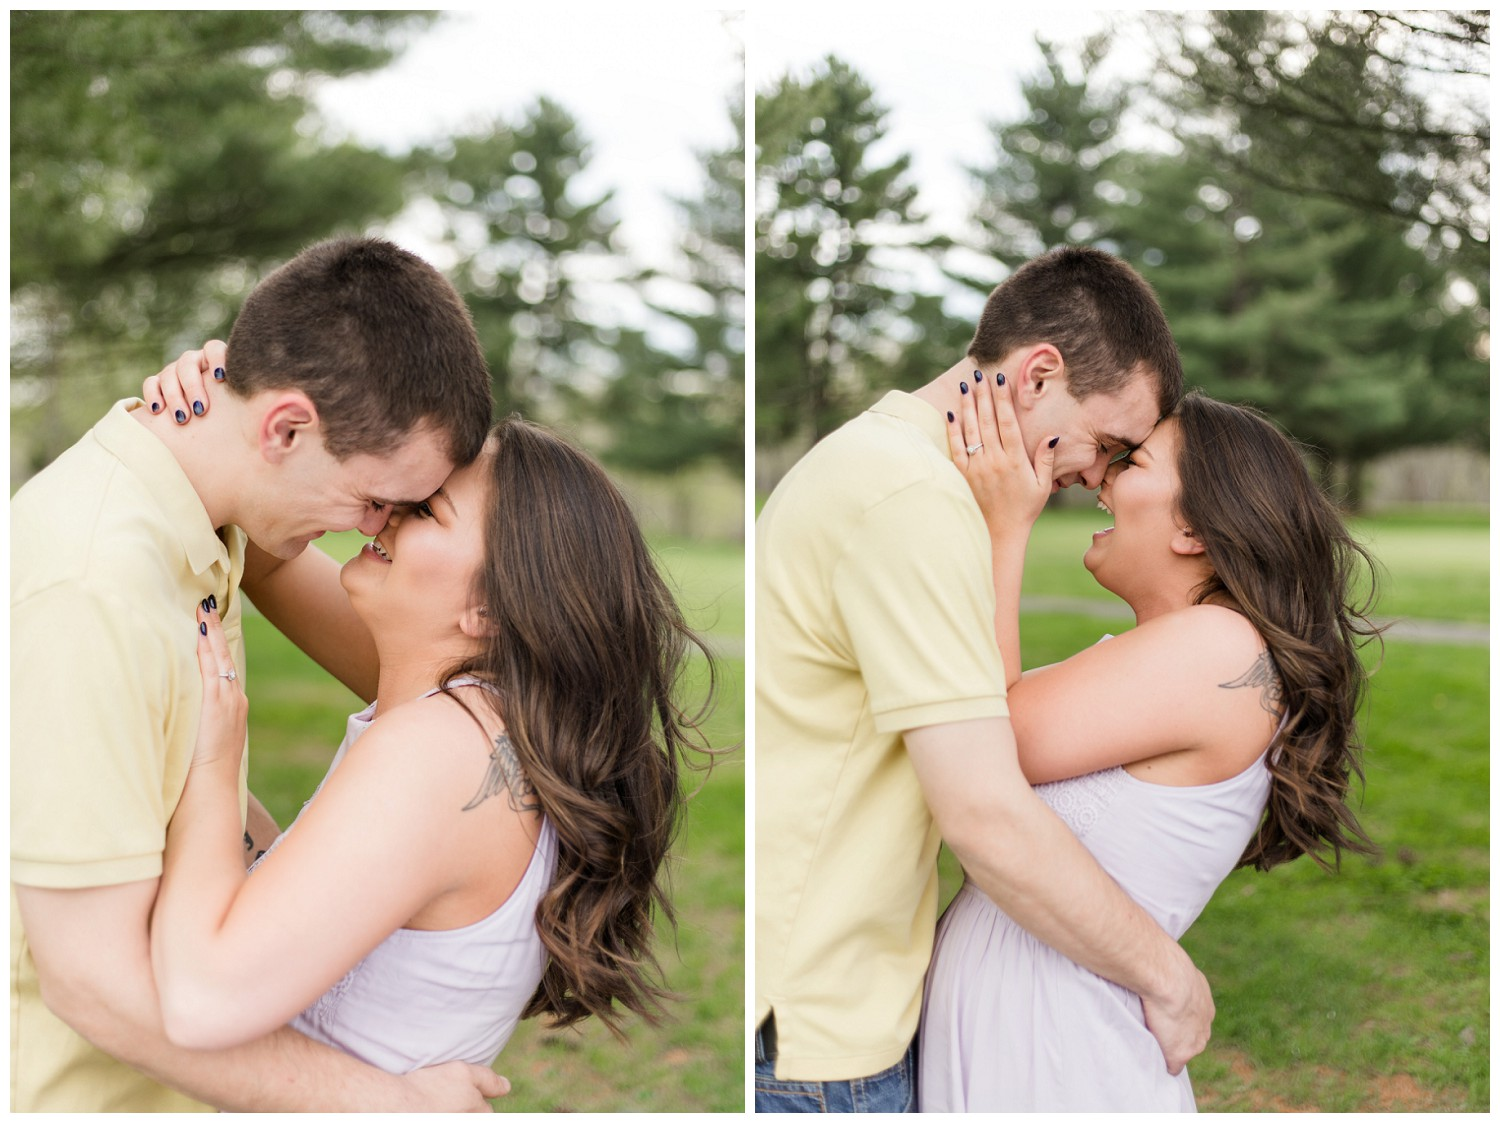 belwood-country-club-engagement-session_0008.jpg